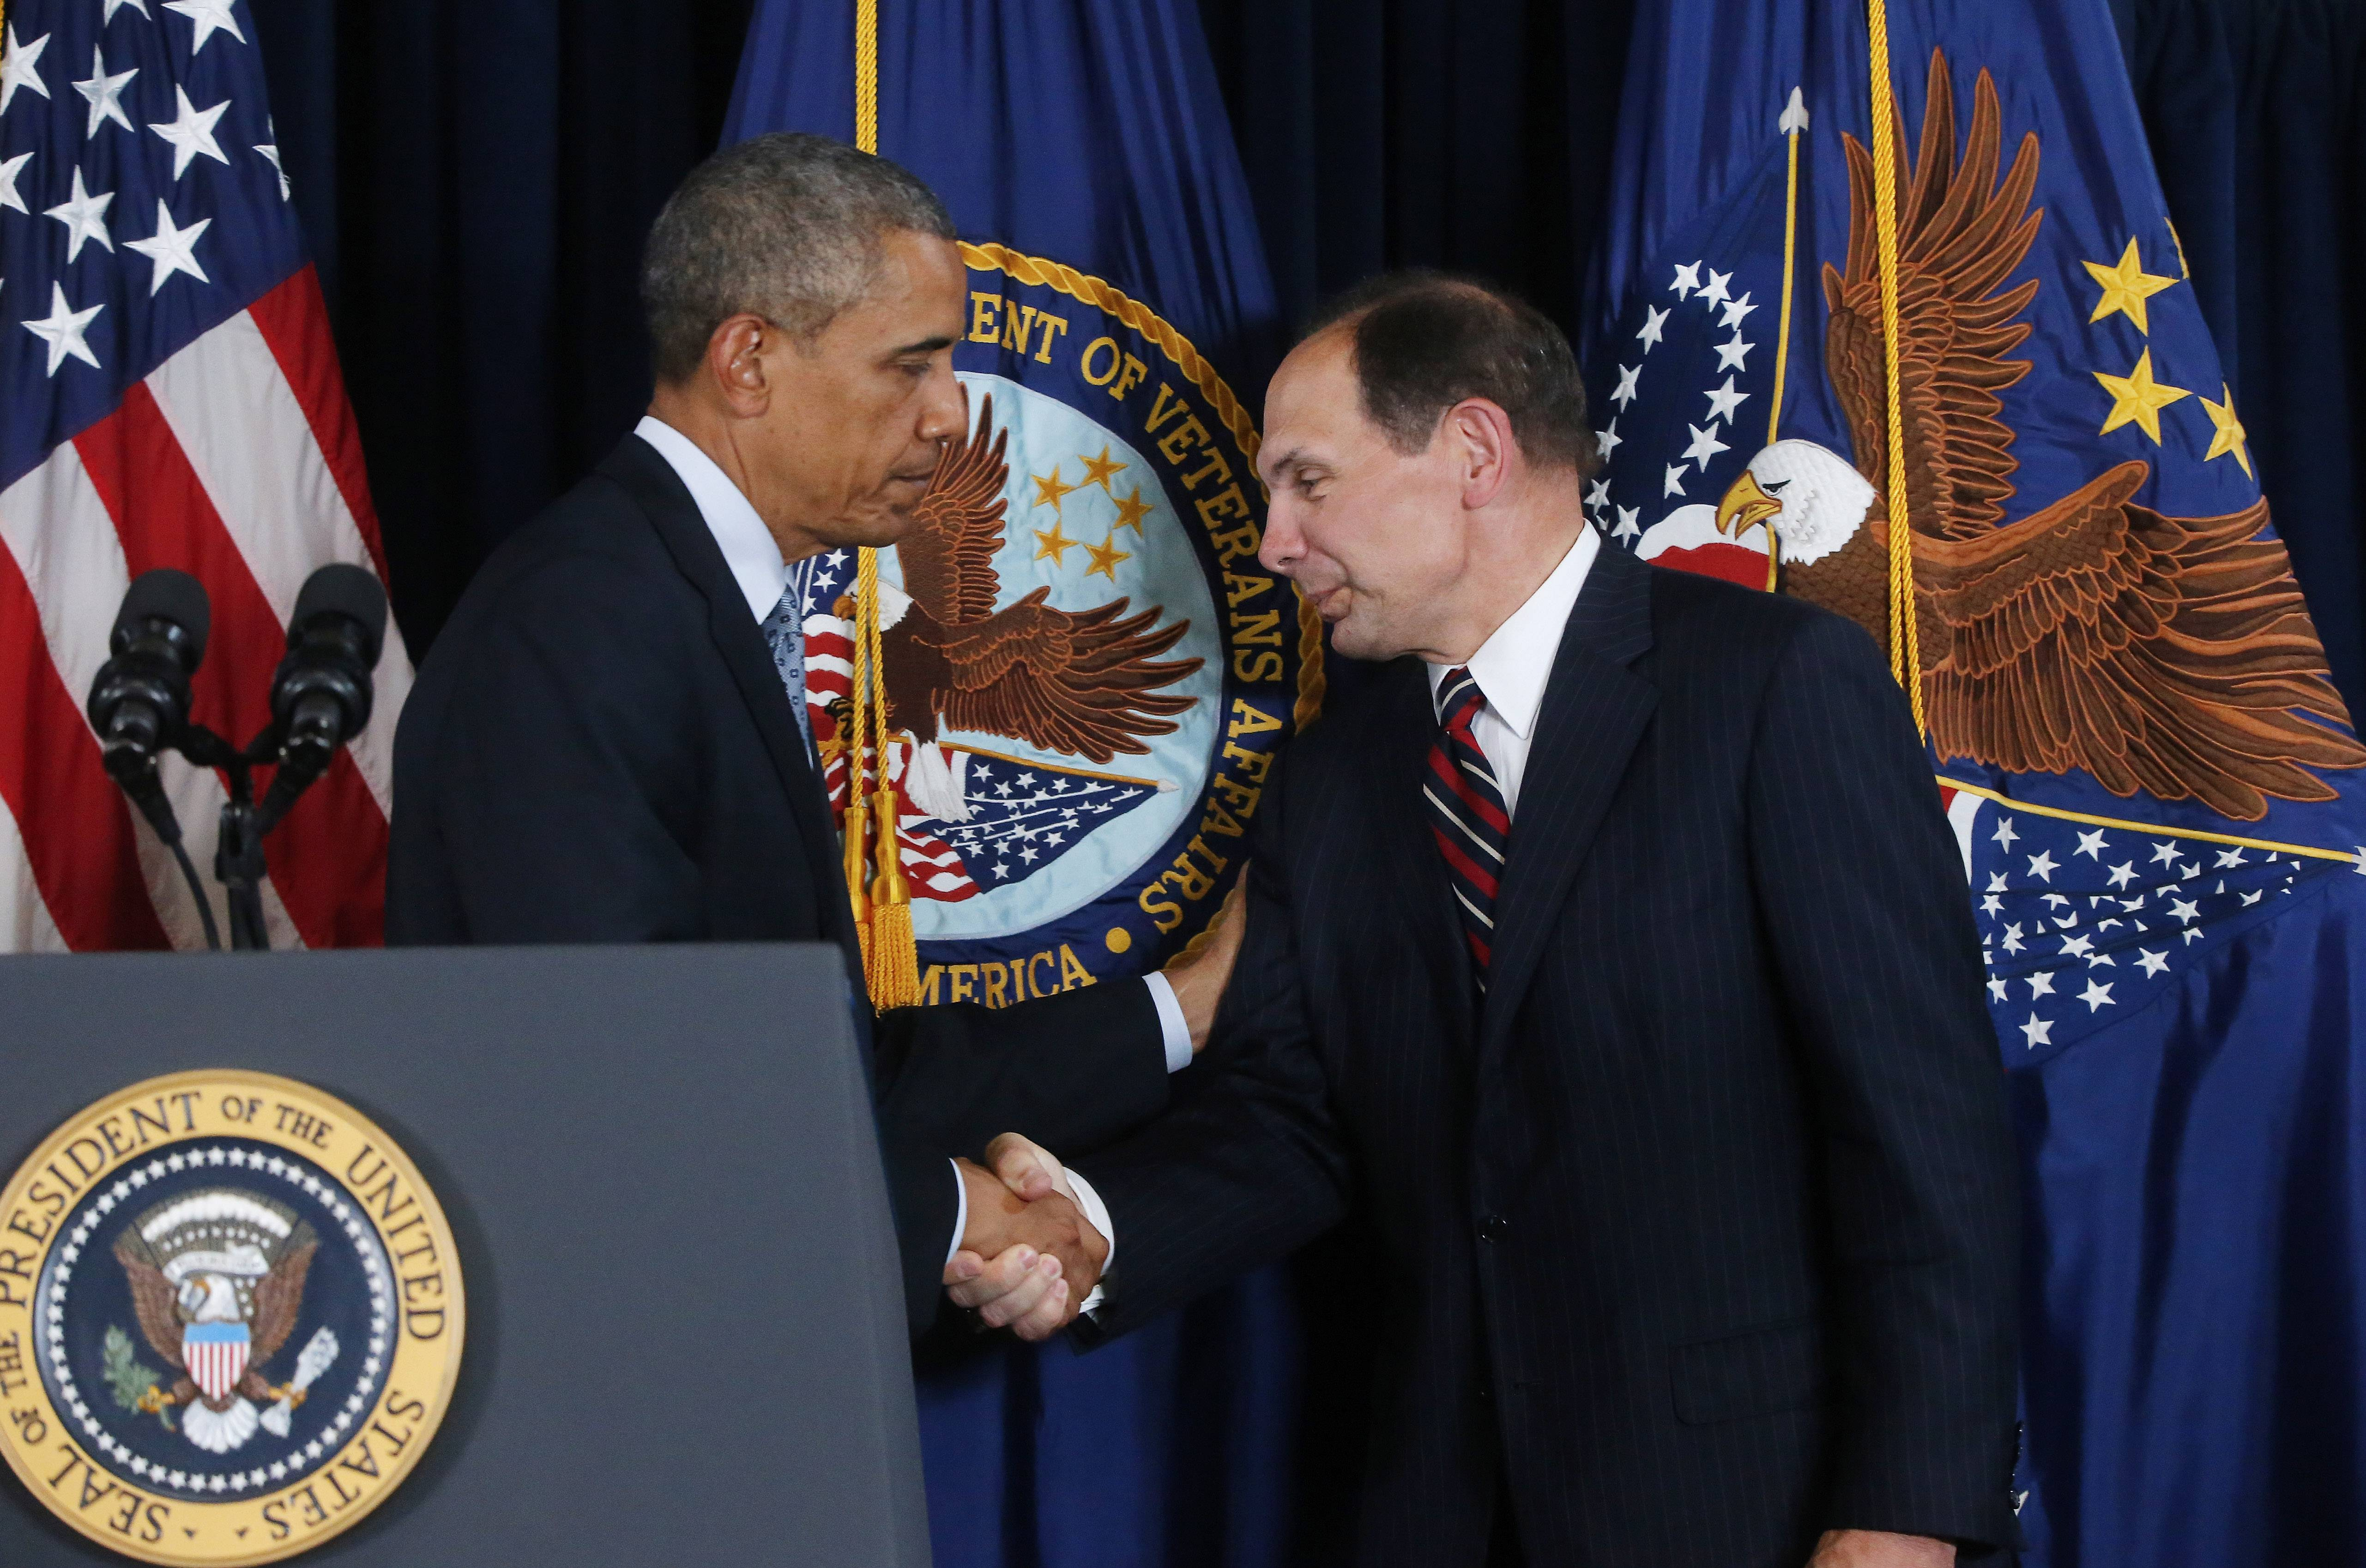 President Barack Obama shakes hands with former Procter & Gamble CEO Robert McDonald, his nominee as the next Veterans Affairs secretary, at the Department of Veterans Affairs in Washington D.C. on June 30. McDonald spent his formative years in Arlington Heights.